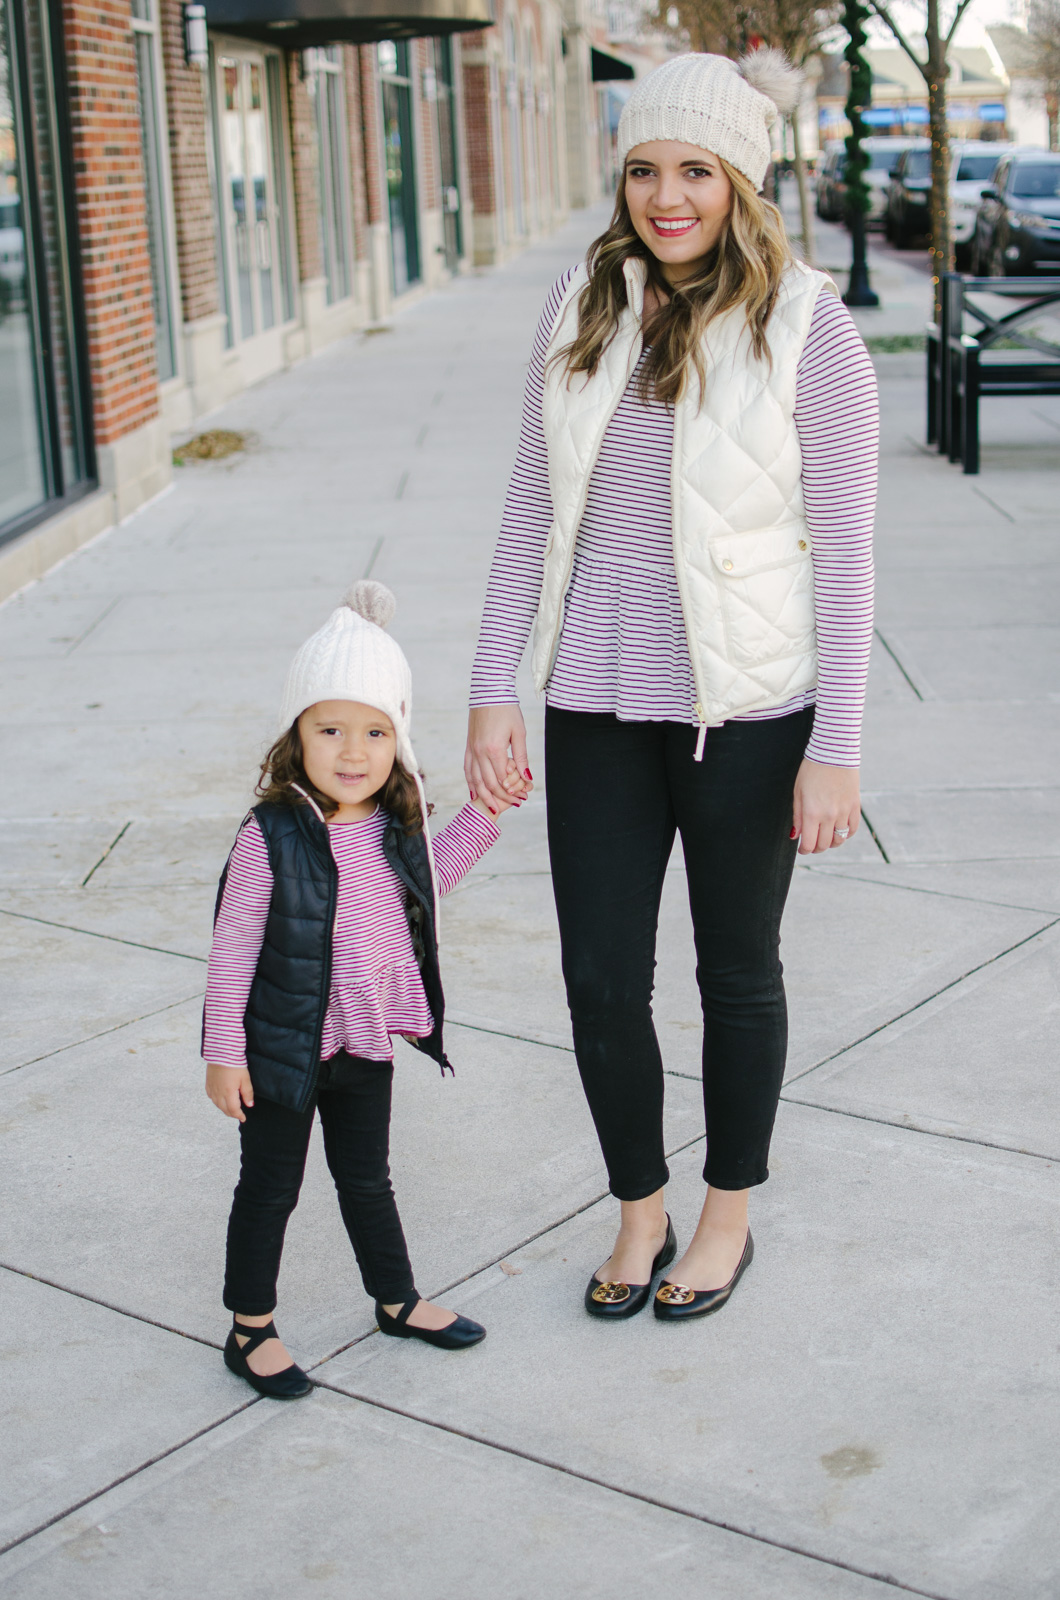 matching mommy and me outfits for winter - mother daughter matching outfit ideas! | See more mommy and me matching outfits at bylaurenm.com!